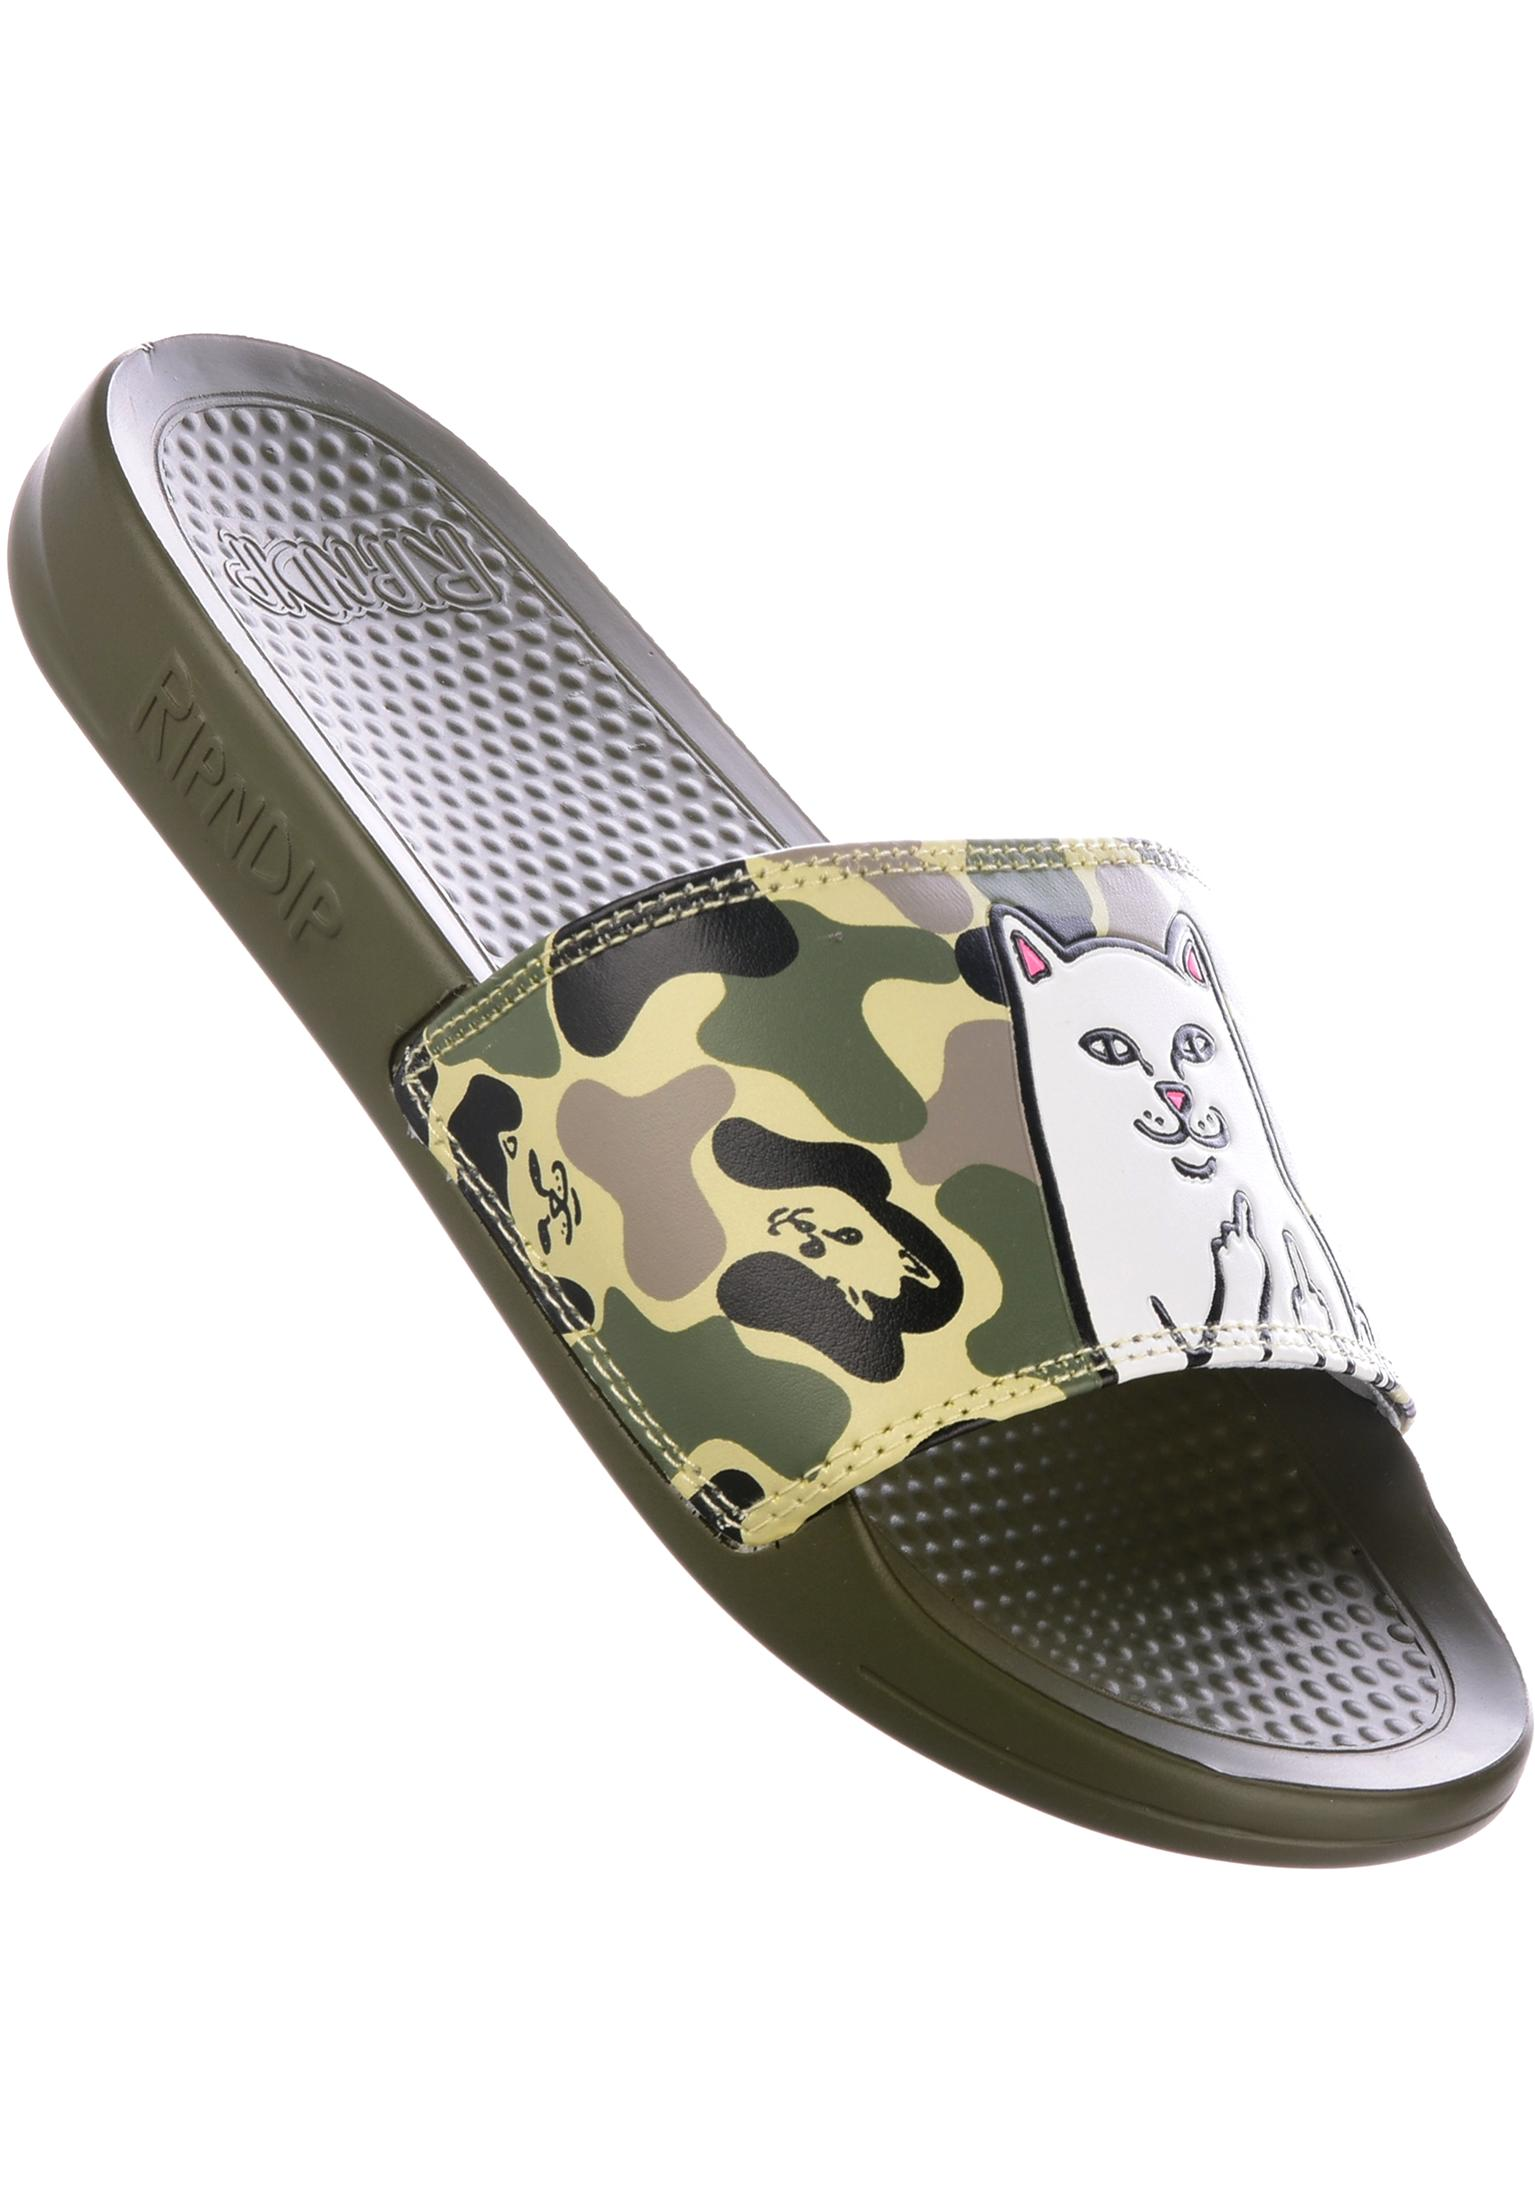 13635b36391ab Lord Nermal Slides Rip N Dip Sandals in army-camo for Men